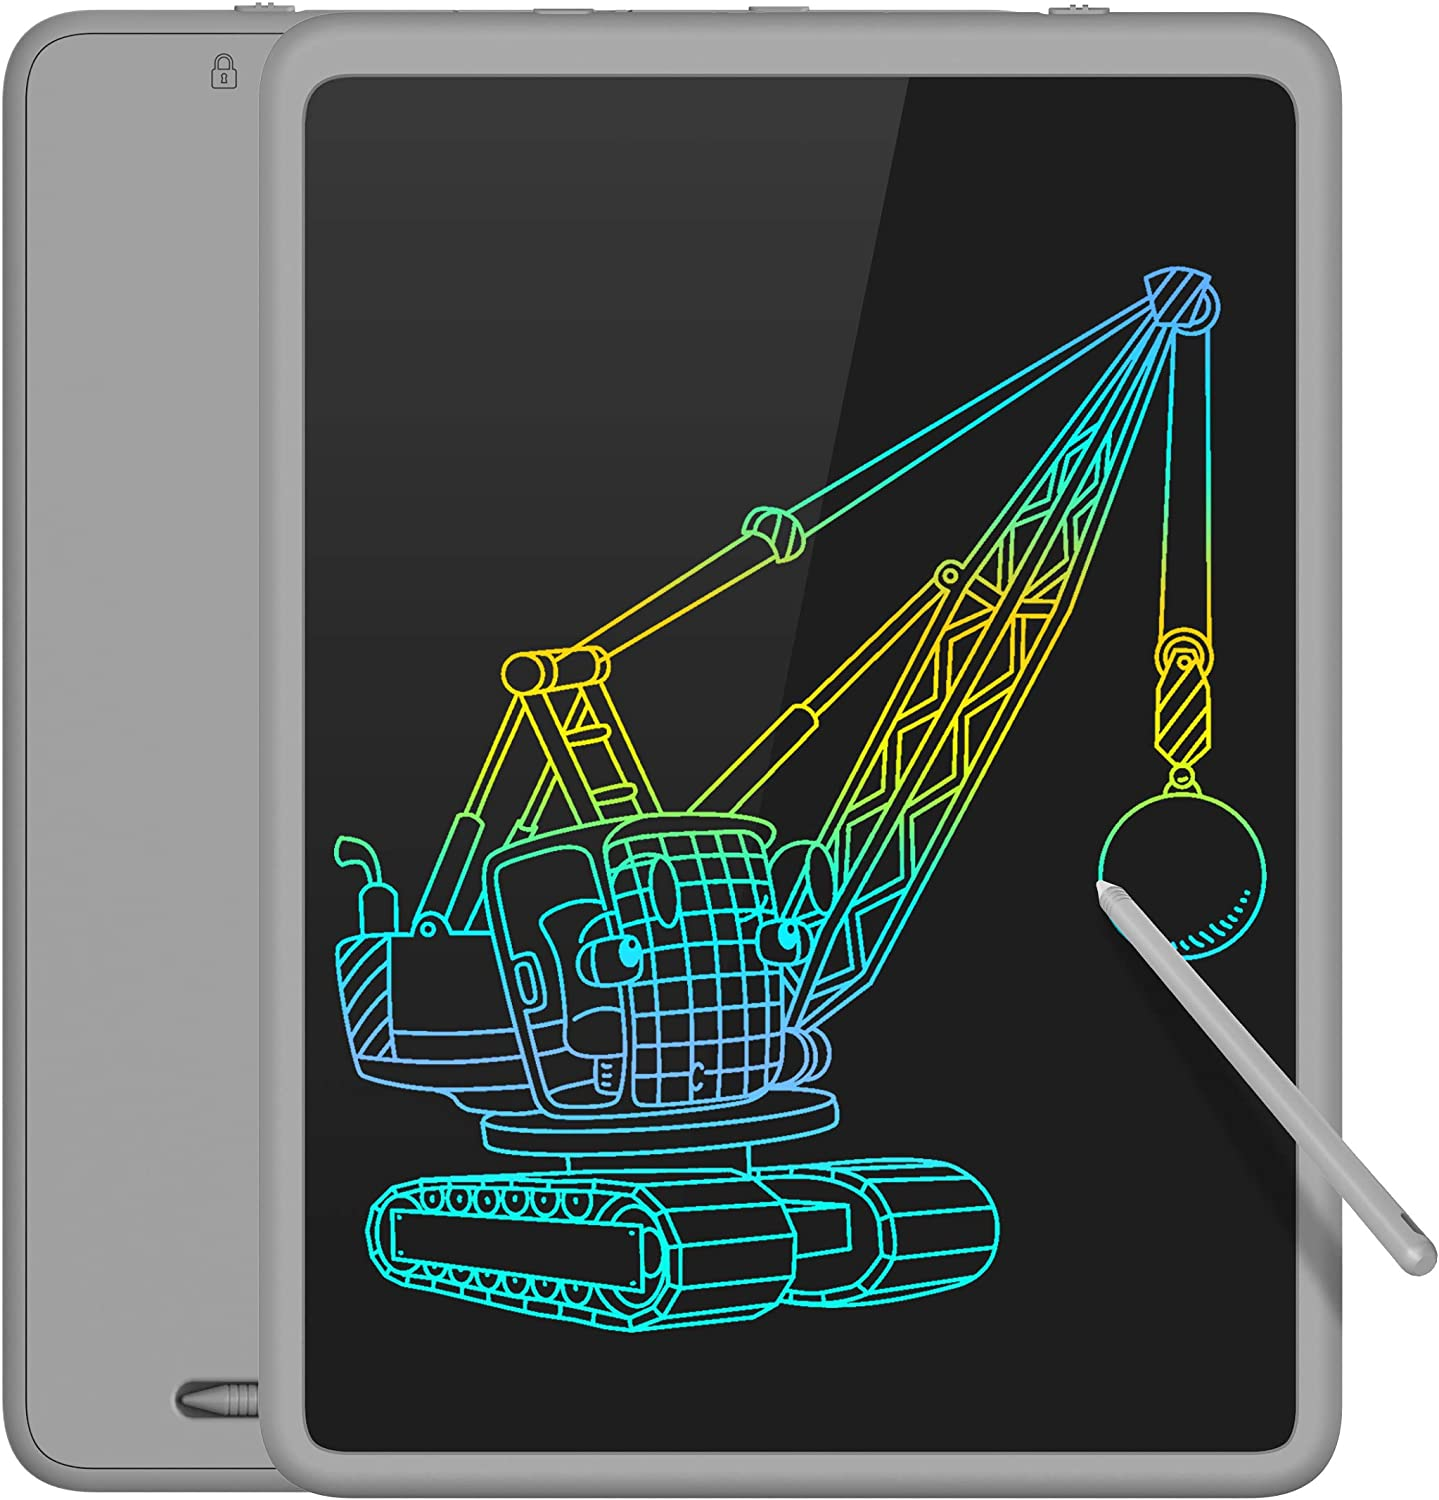 TECBOSS LCD Writing Tablet Colorful Large Screen, Electronic Digital Drawing Board Doodle Pad for Office School Home (Gray, 11inch)